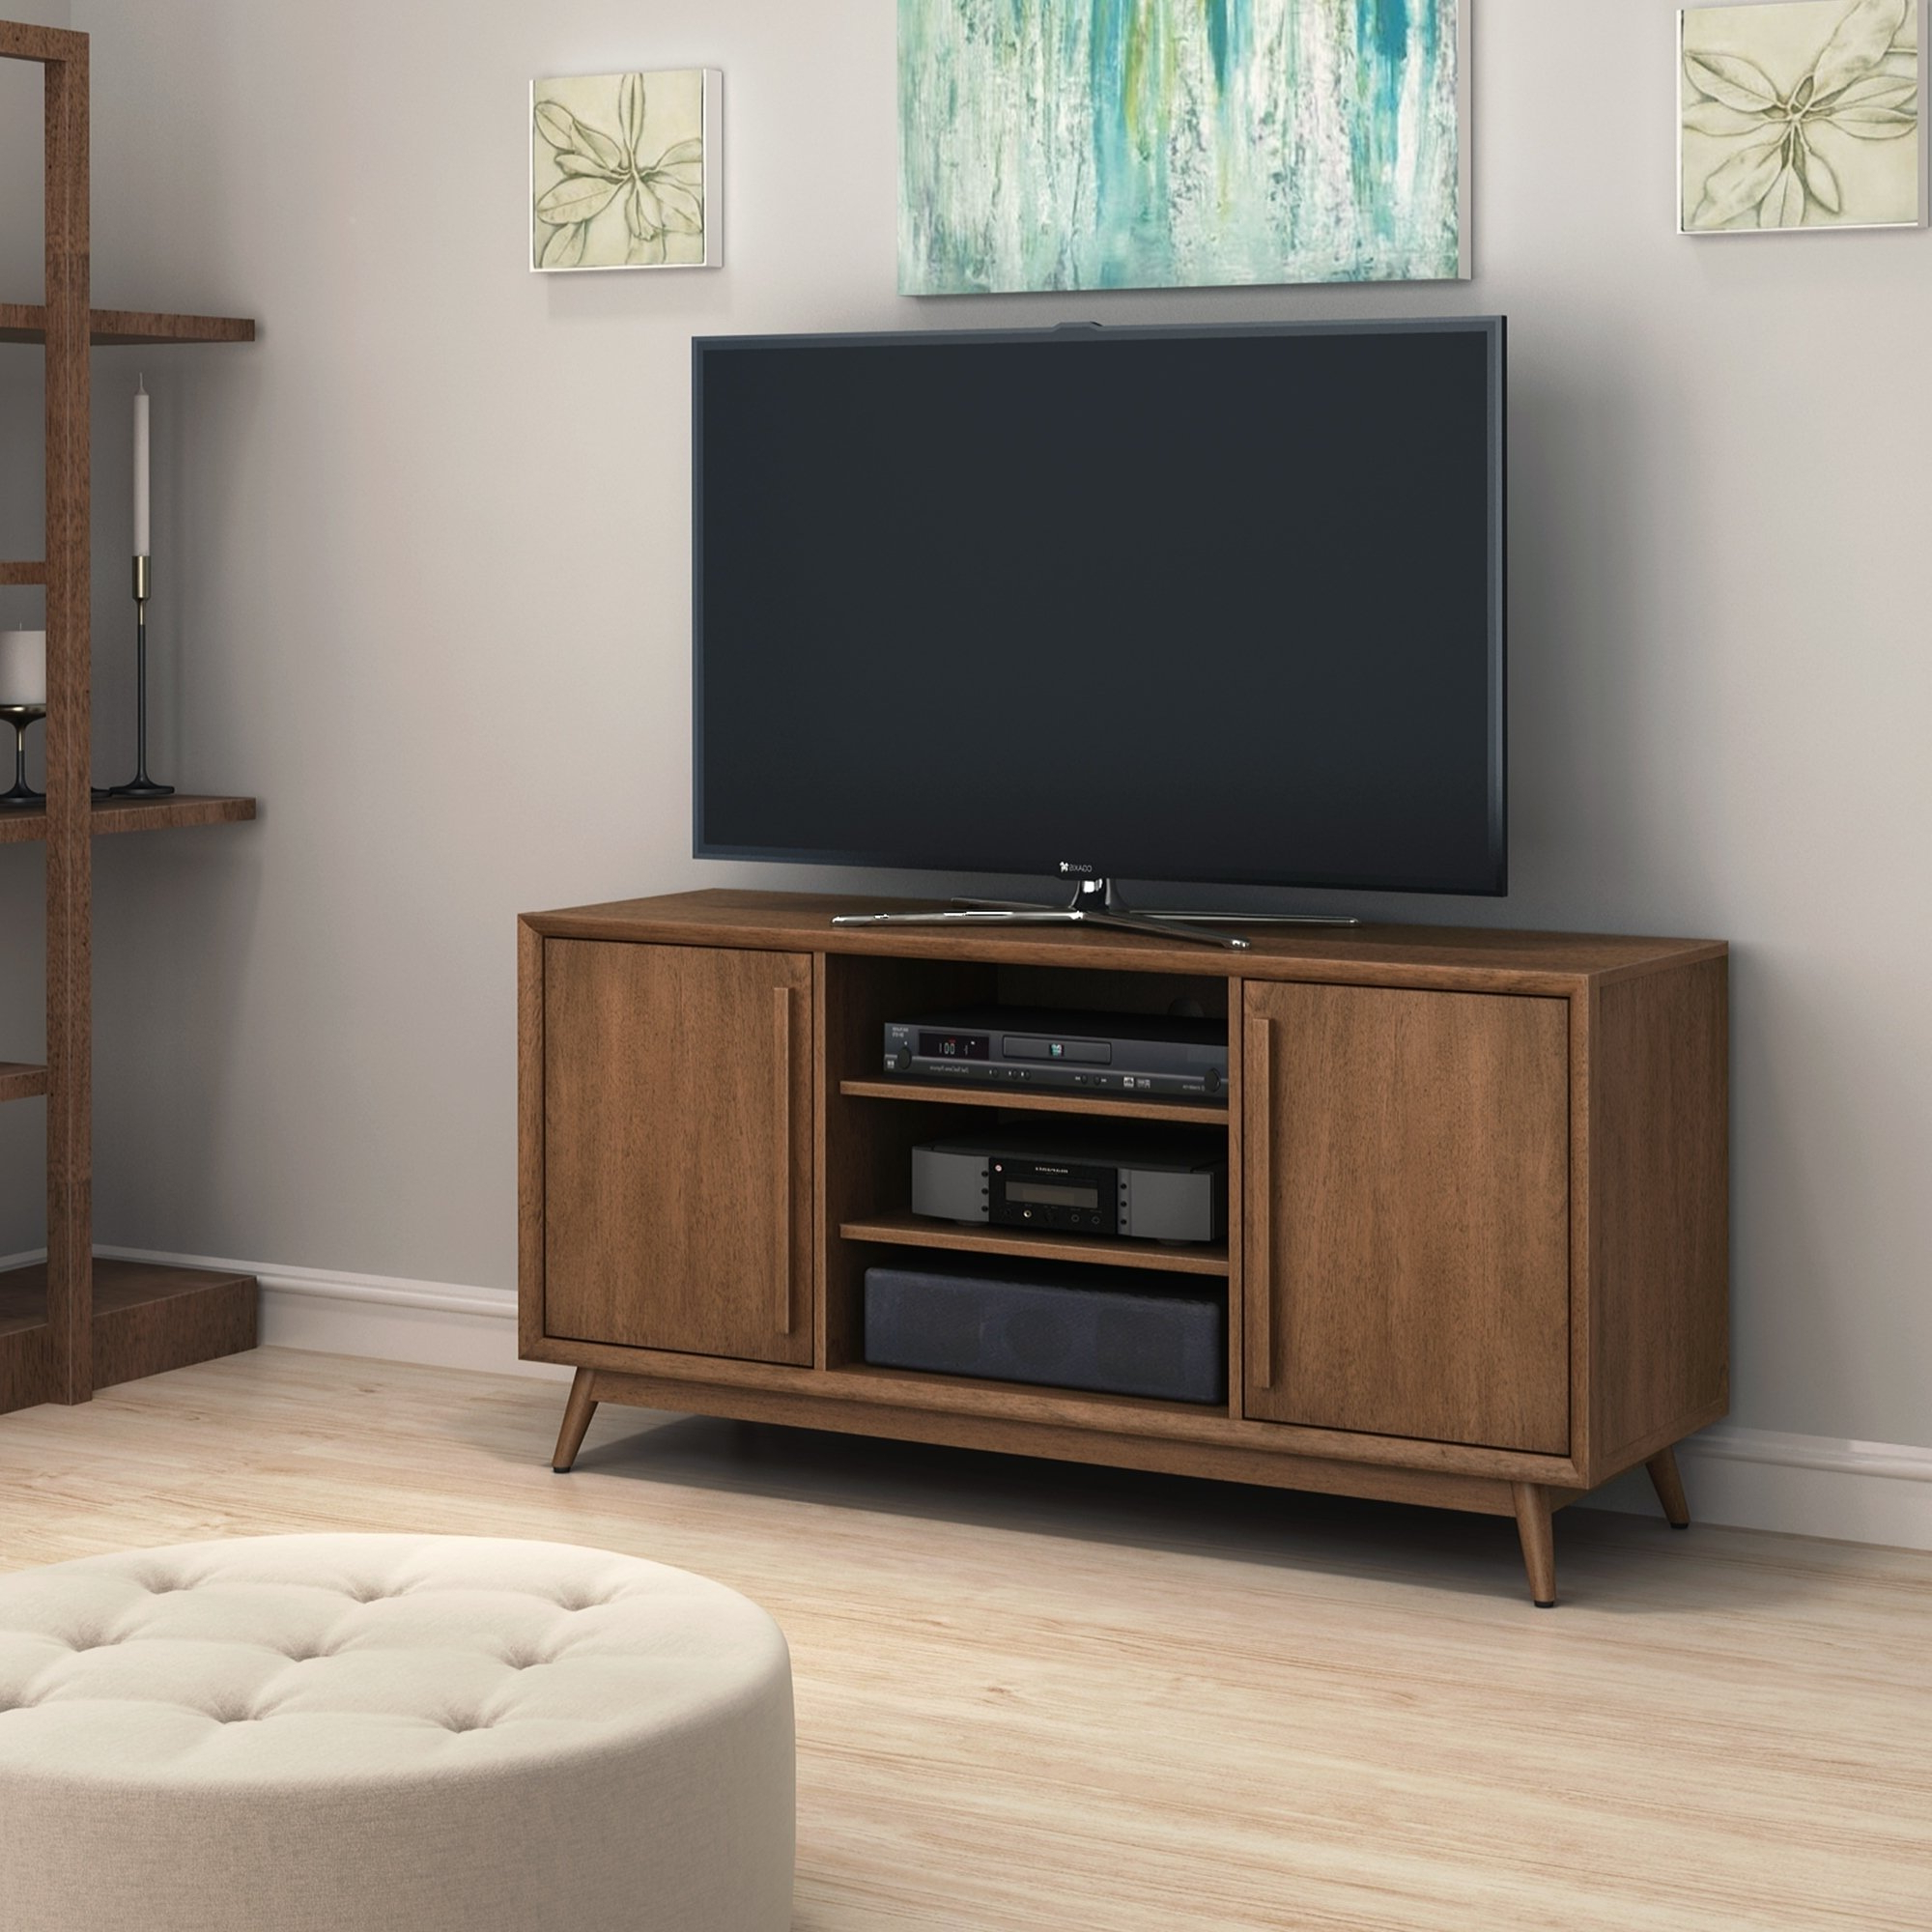 Birch Tv Stands With Regard To 2017 Shop Leawood Tv Stand For Tvs Up To 60 Inches, Broadwalk Birch (View 12 of 20)